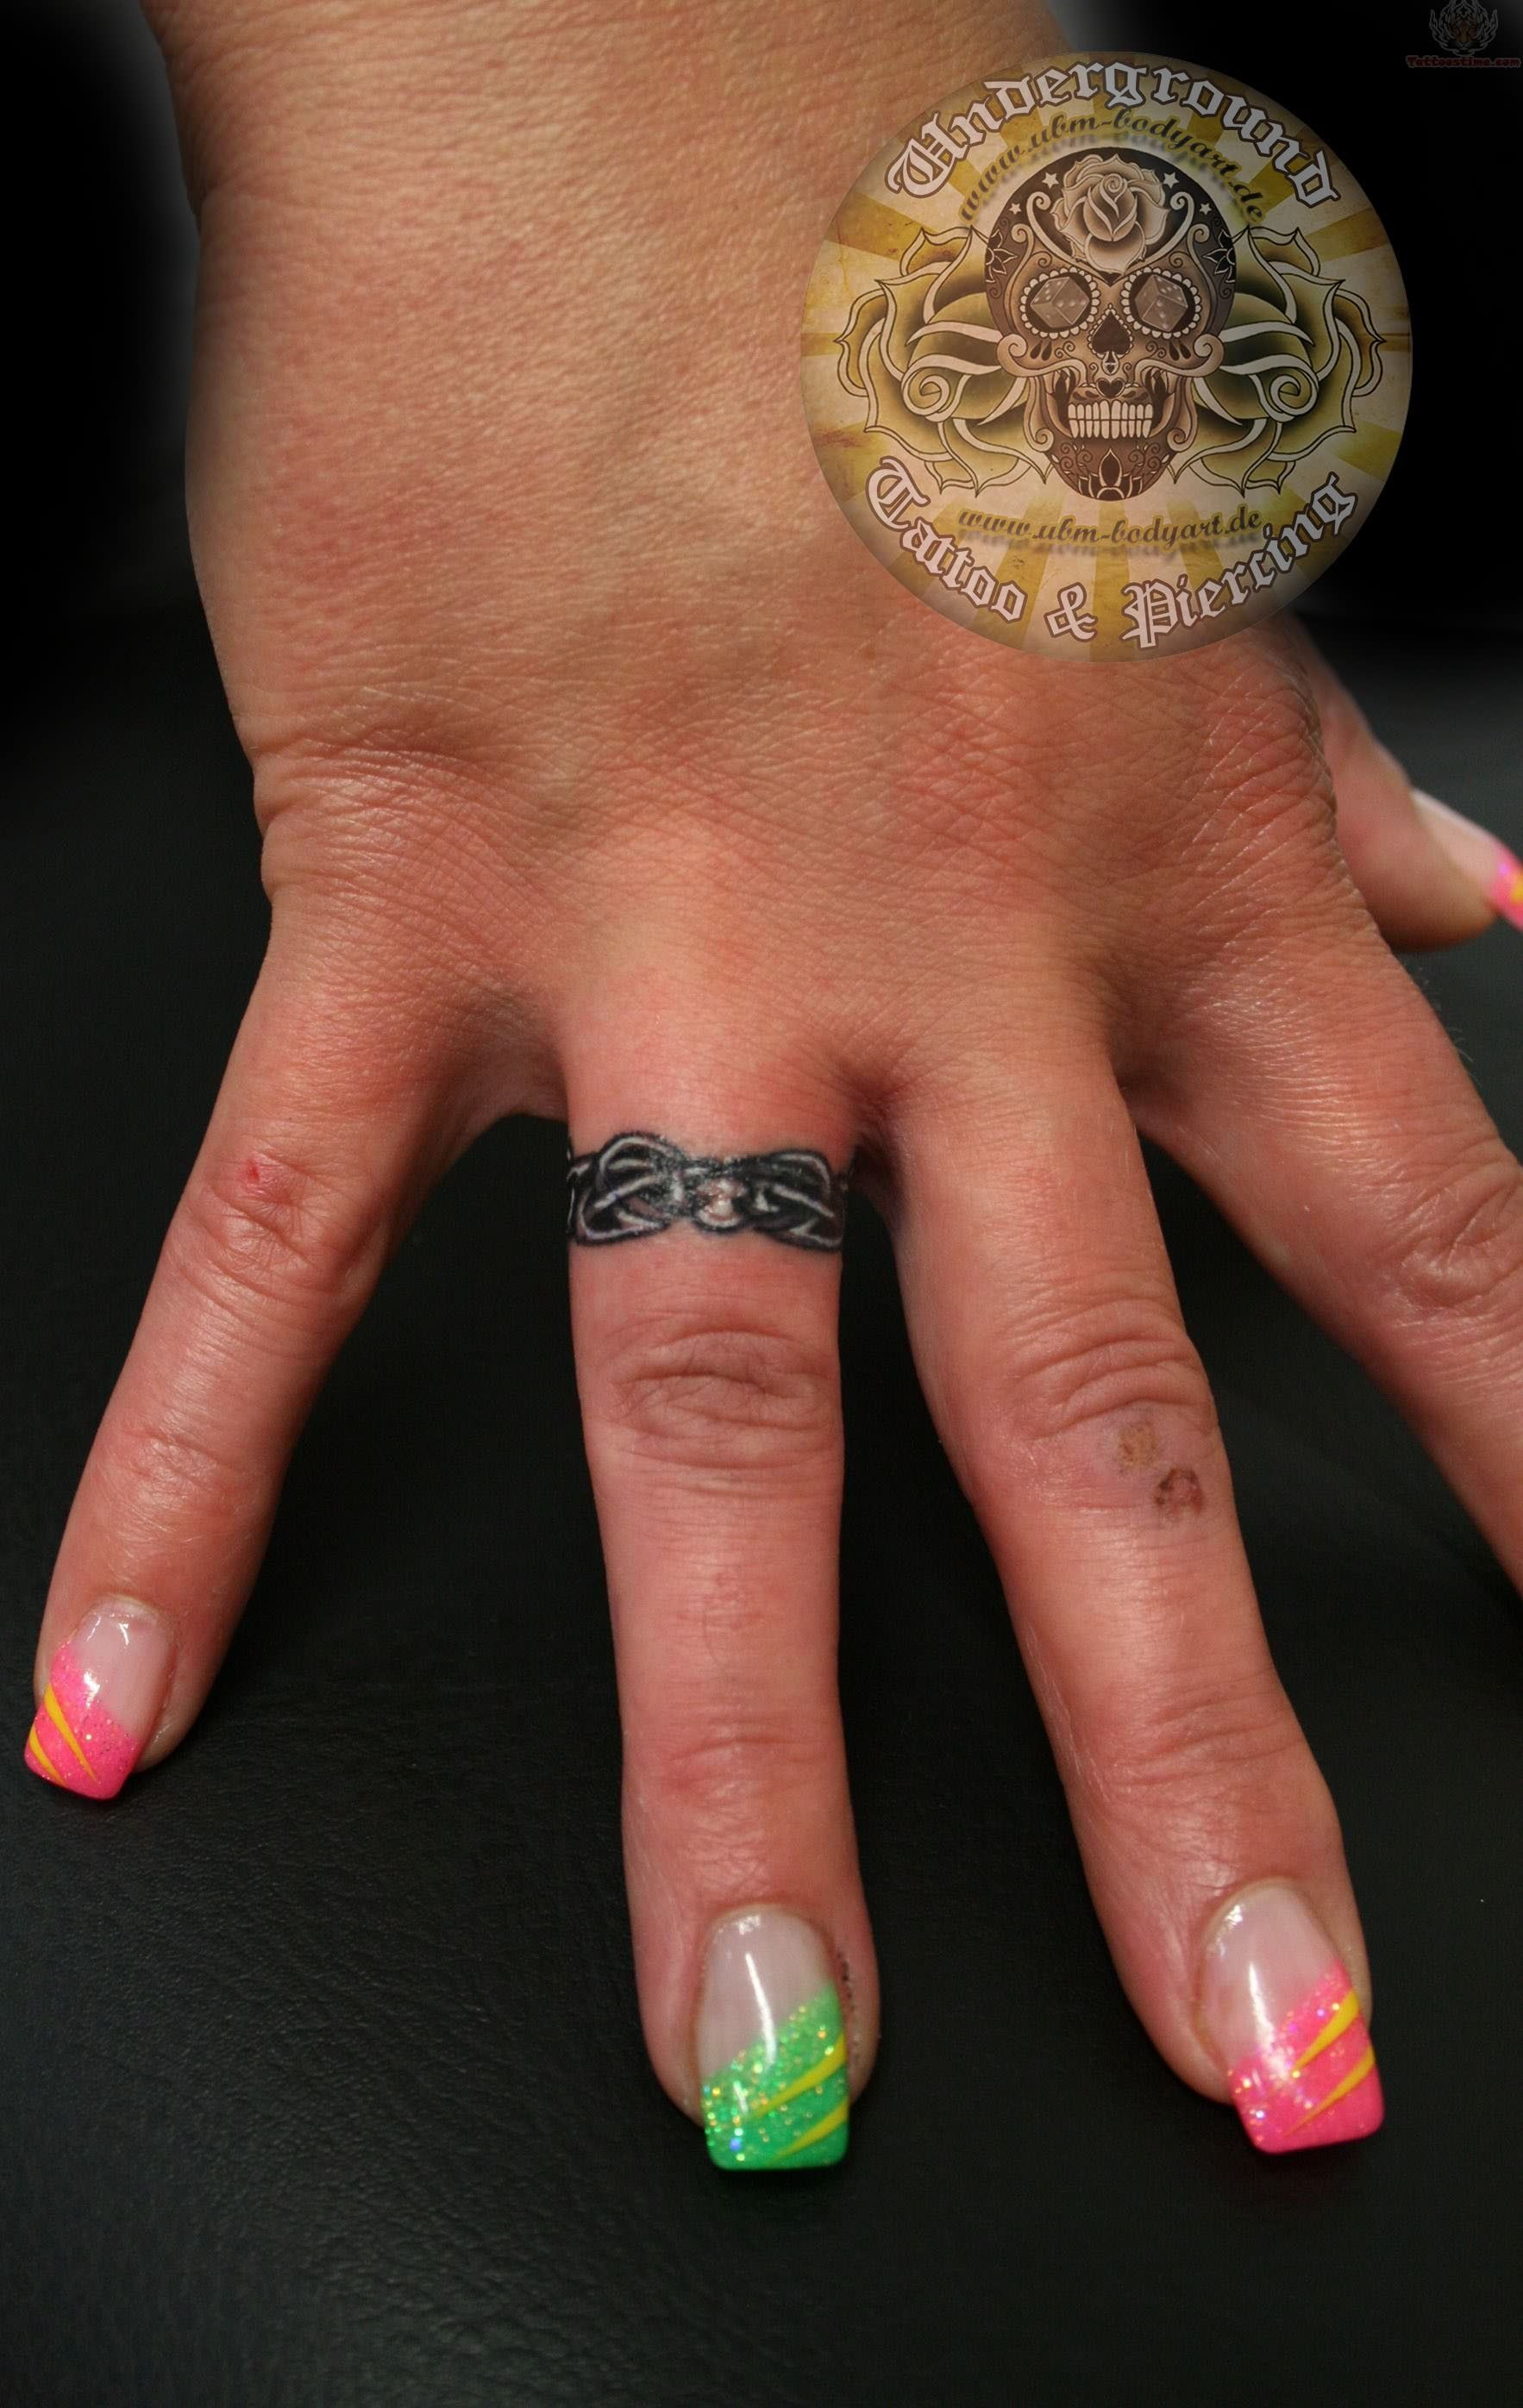 tattooed elegant jewelry tattoos rings ring wedding designs infinity ideas tattoo of